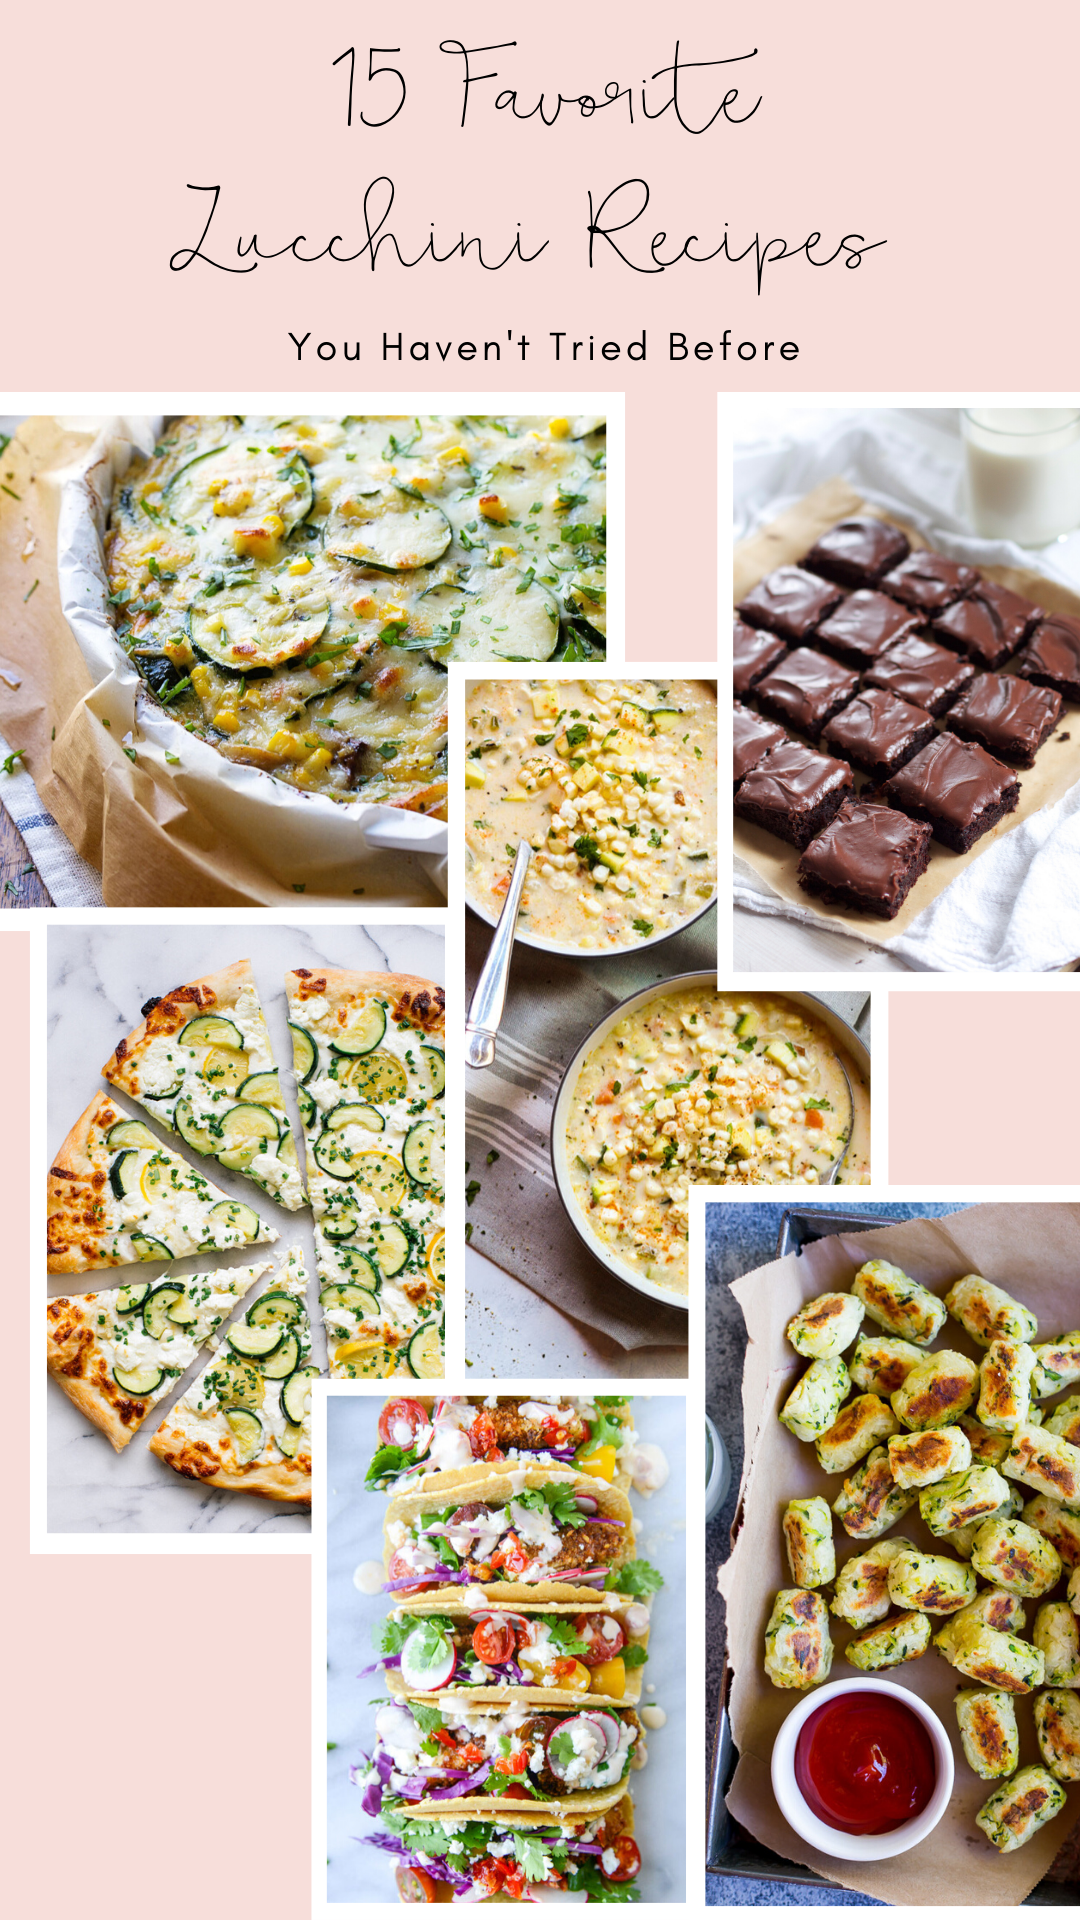 Try a new recipe with the freshest zucchini of the season! These 15 favorite zucchini recipes are flavorful, unique, and odds are, you haven't tried before! | glitterinc.com | @glitterinc